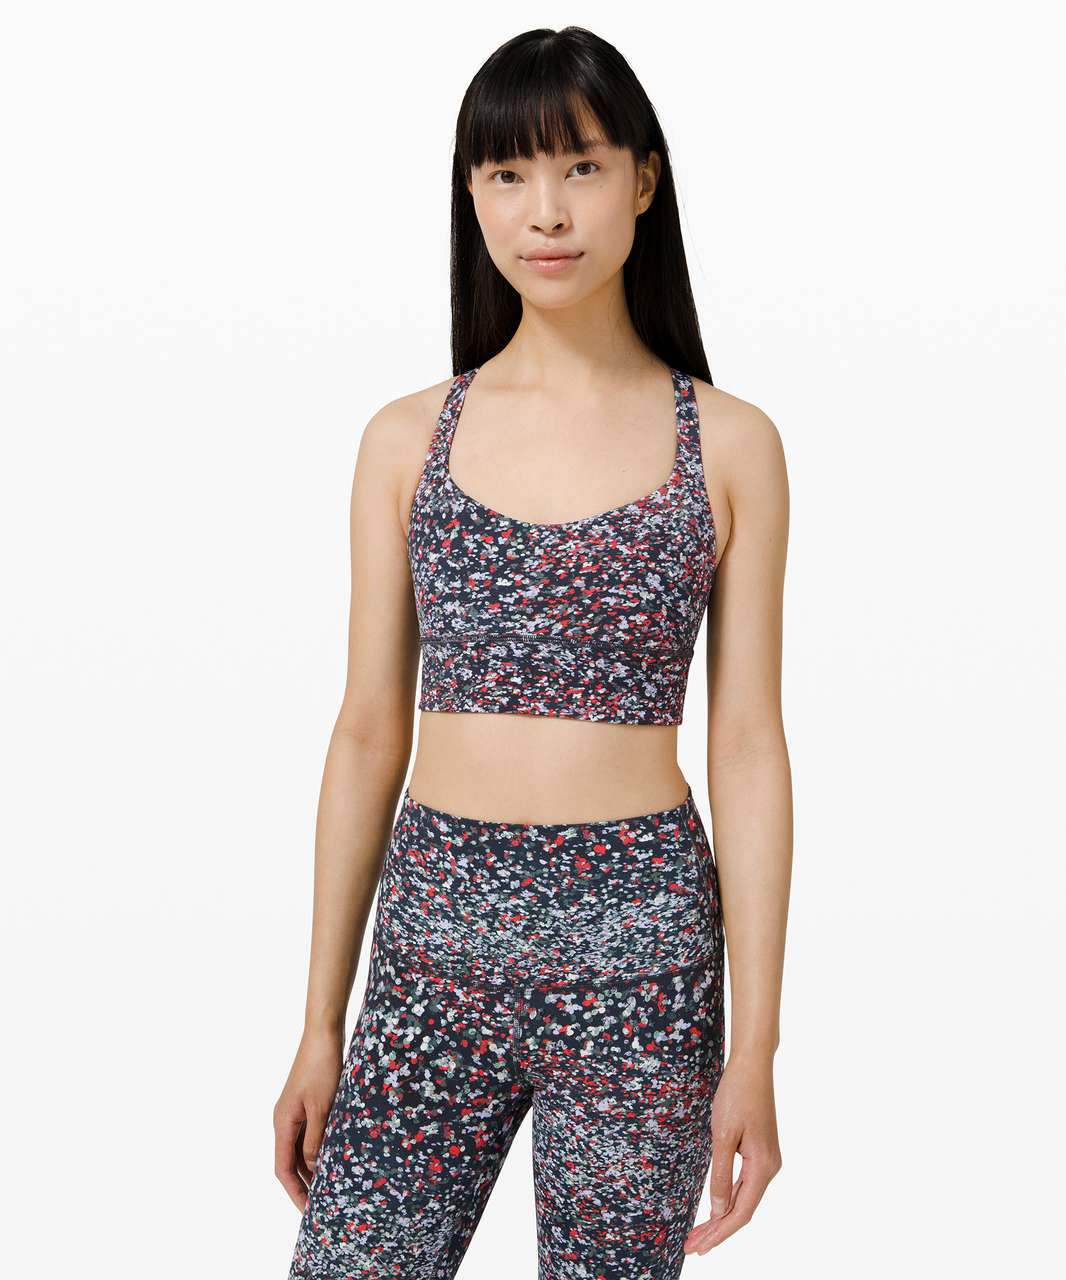 Lululemon Free to Be Long-Line Bra - Wild *Light Support, A/B Cups - Water Blossom Multi